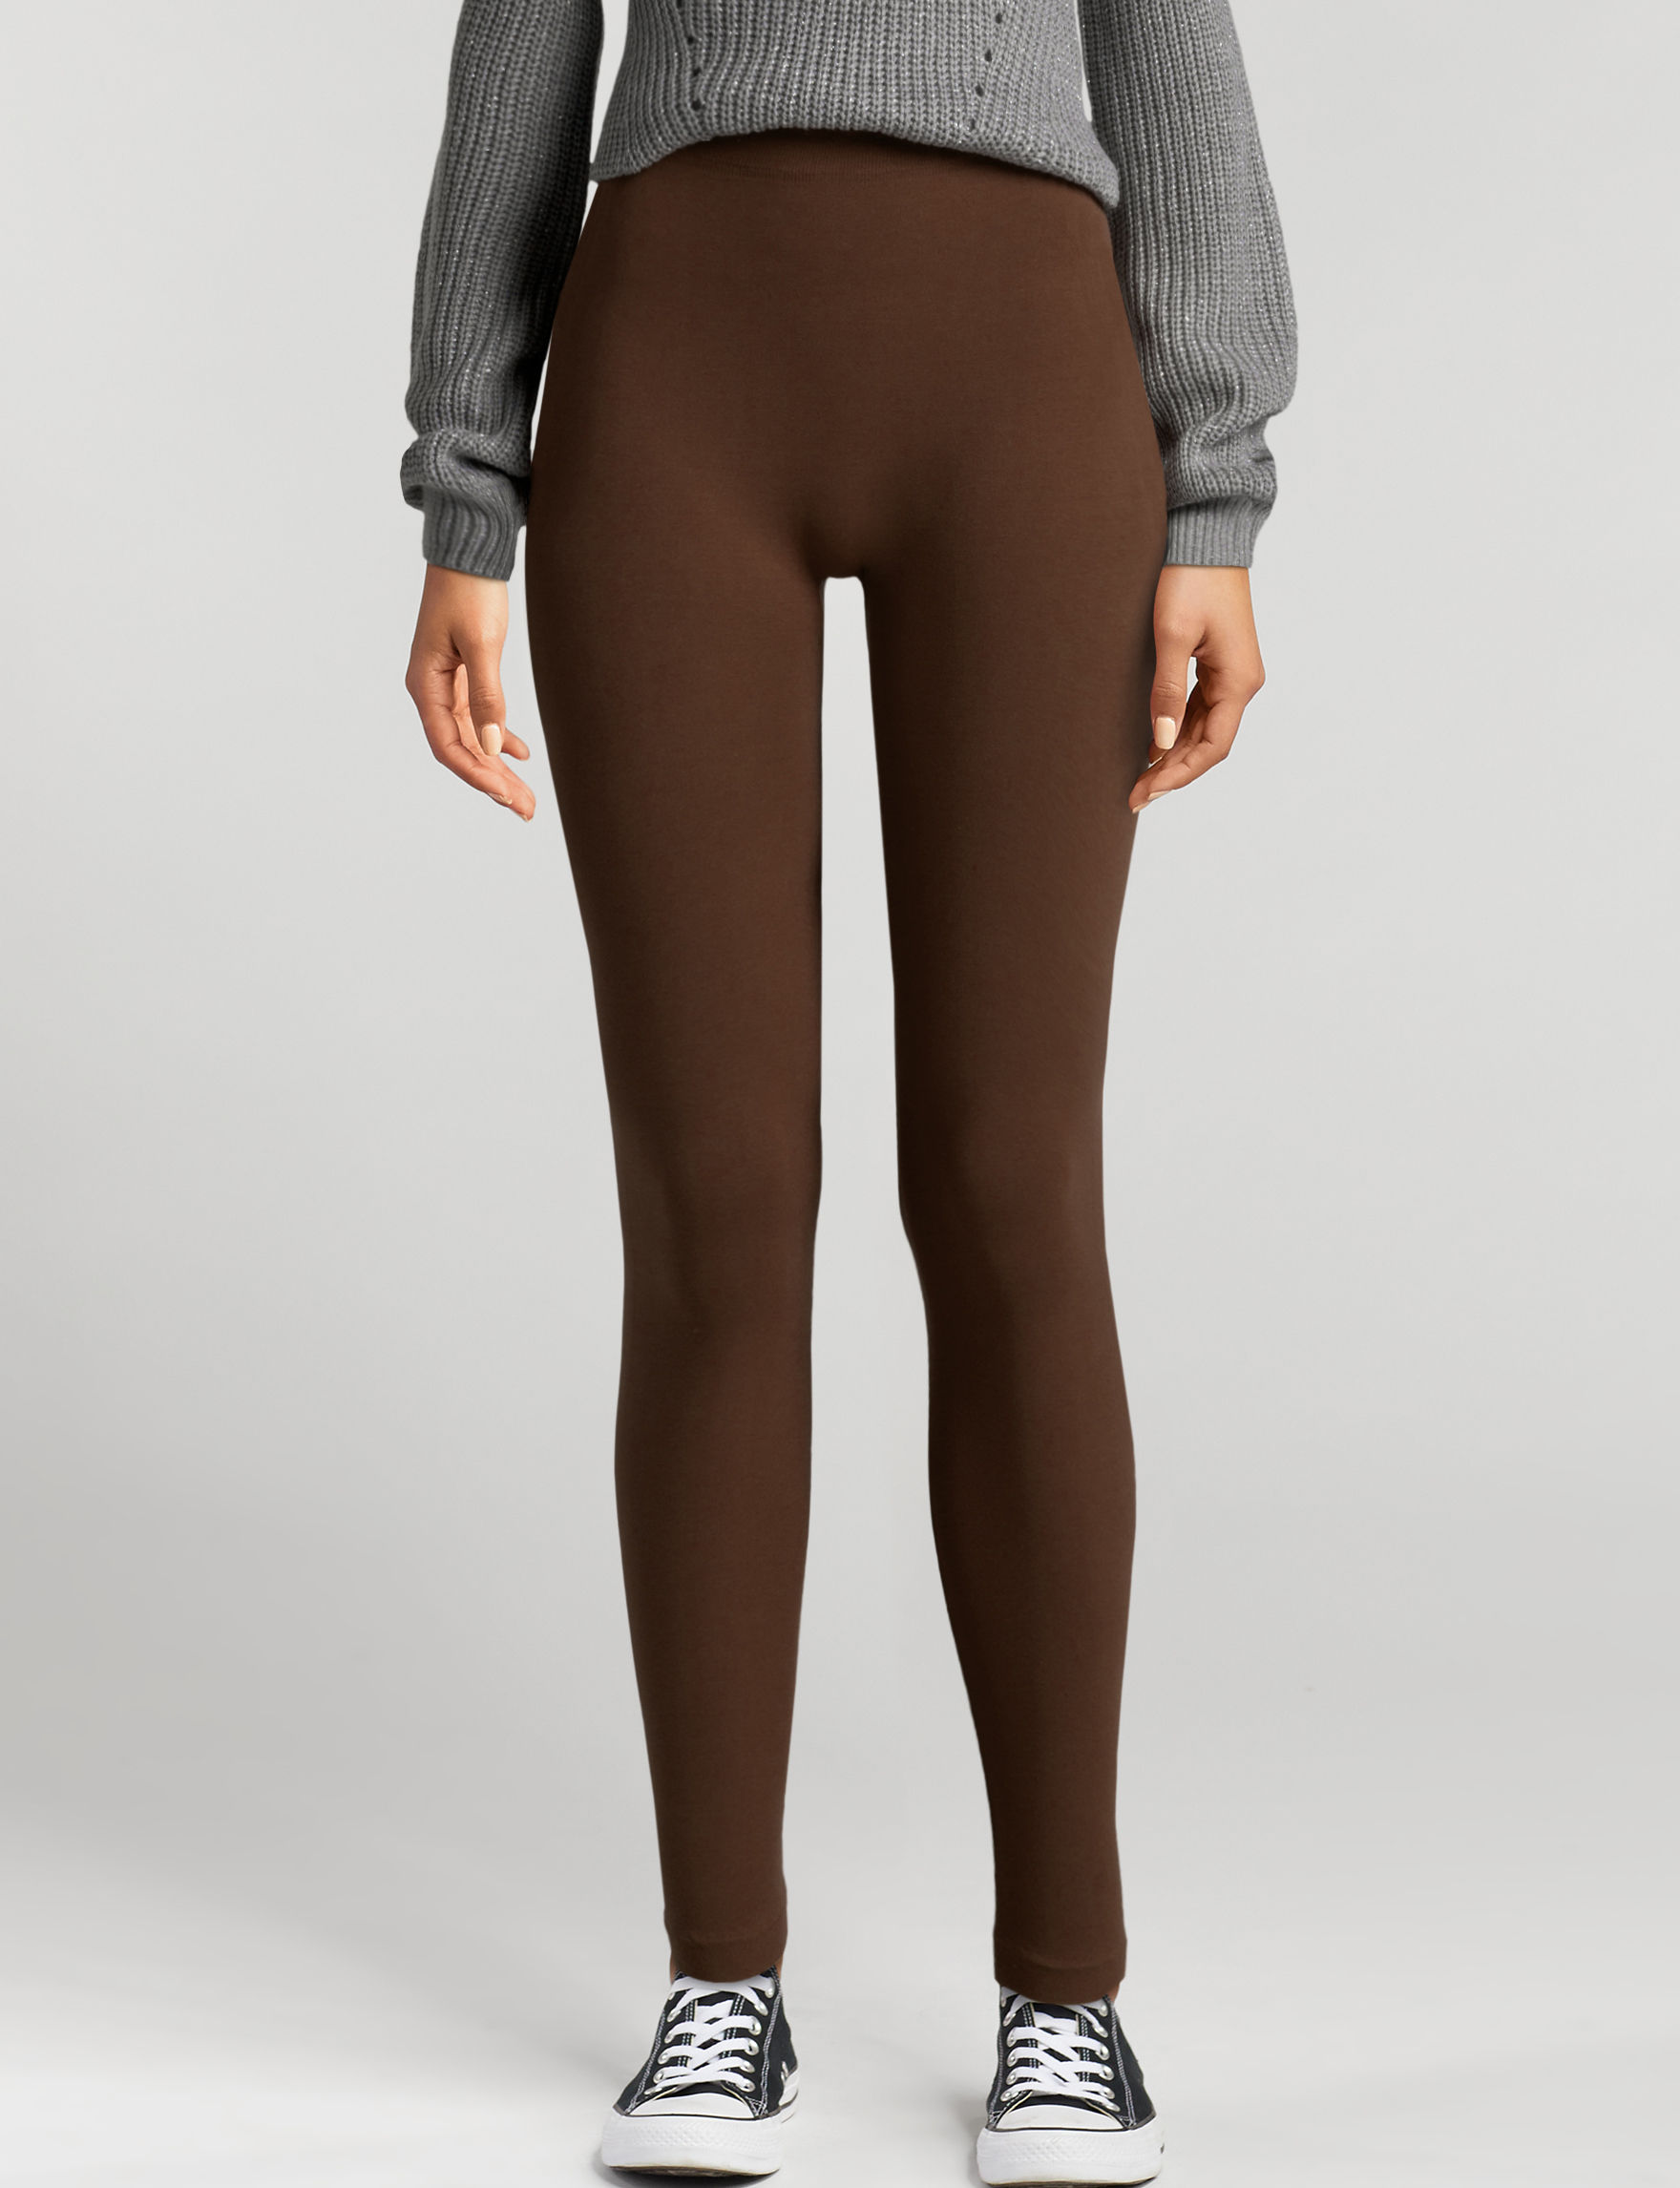 Moral Fiber Brown Leggings